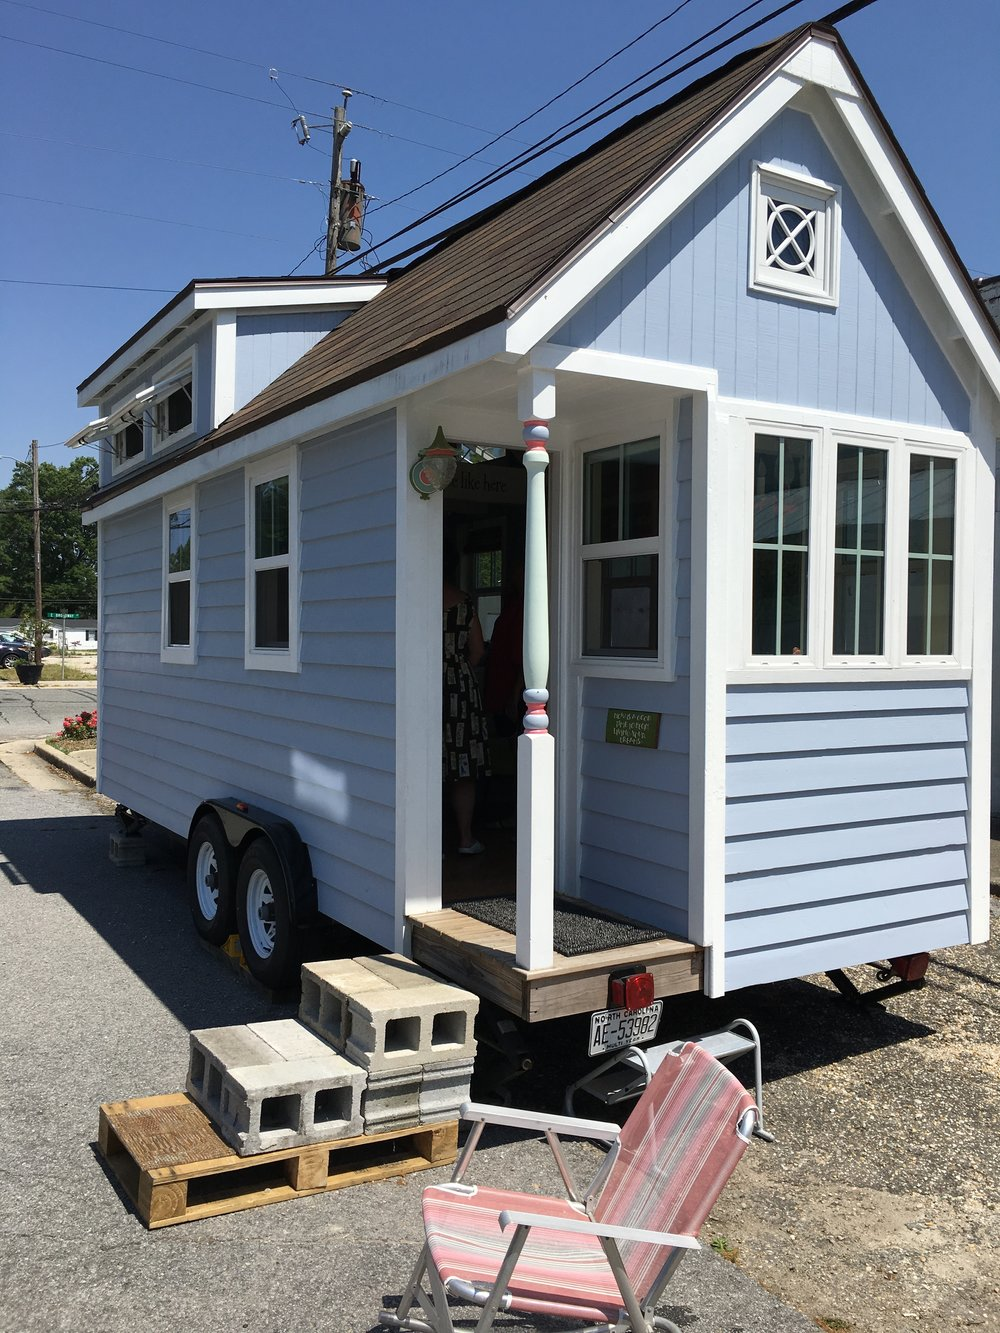 This awesome tiny home belongs to our new friend Patti. You can find it tailgating at football games or parked alongside the banks of the Cape Fear river in Wilmington.